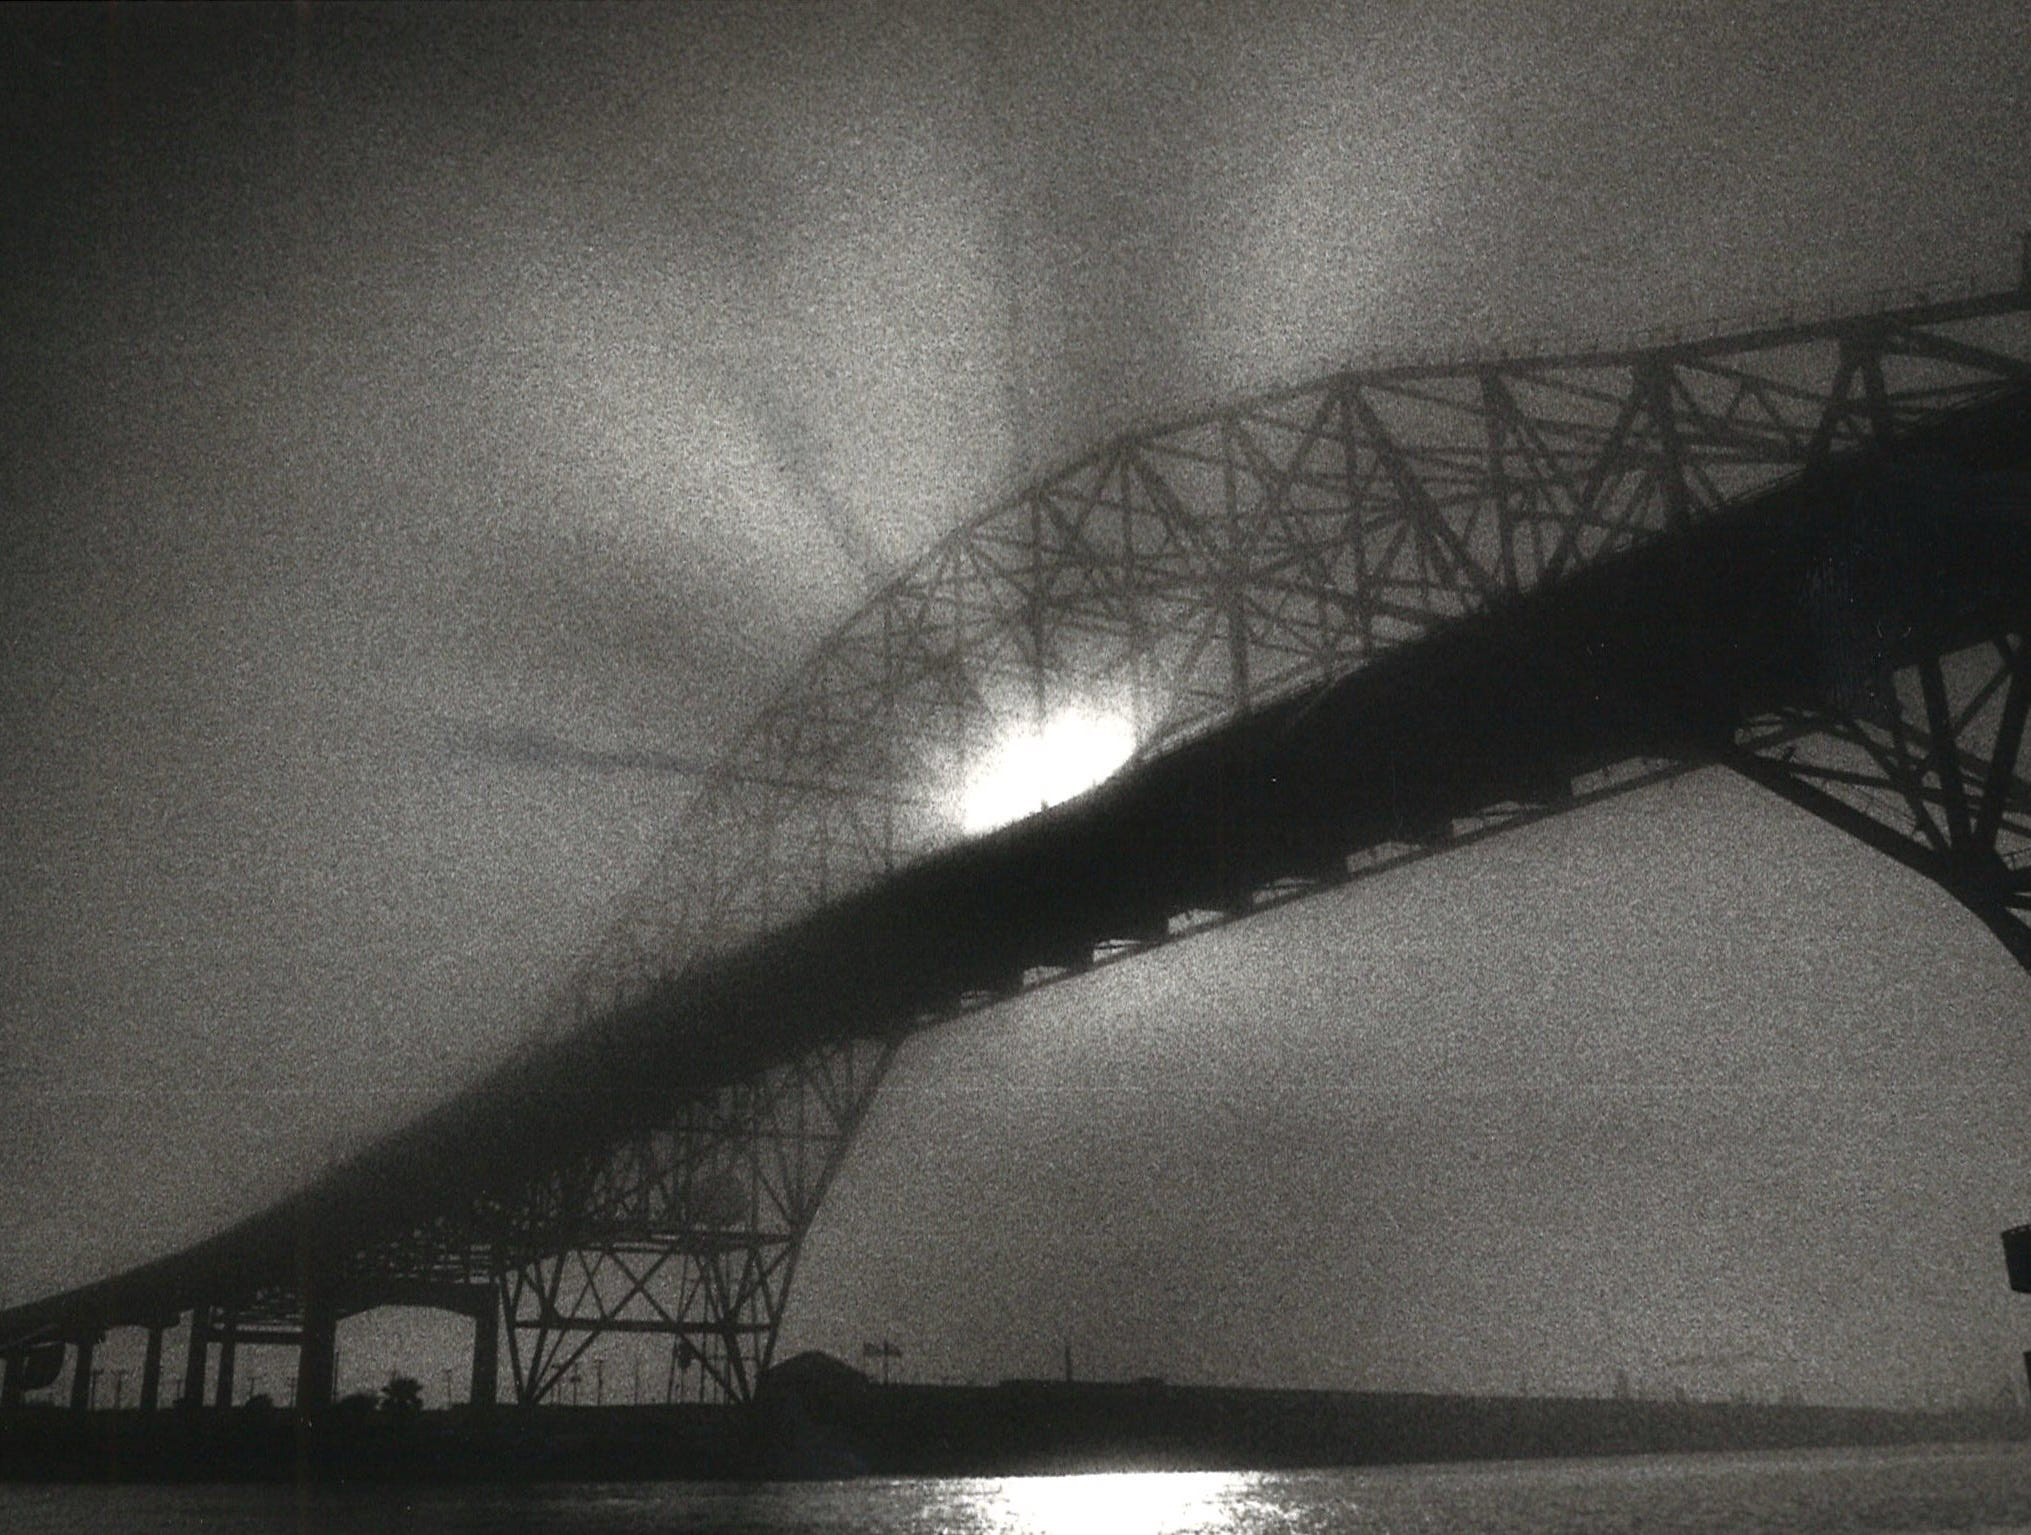 Sun streaks through the beams of the Harbor Bridge in COrpus Christi on Feb. 1, 1988.